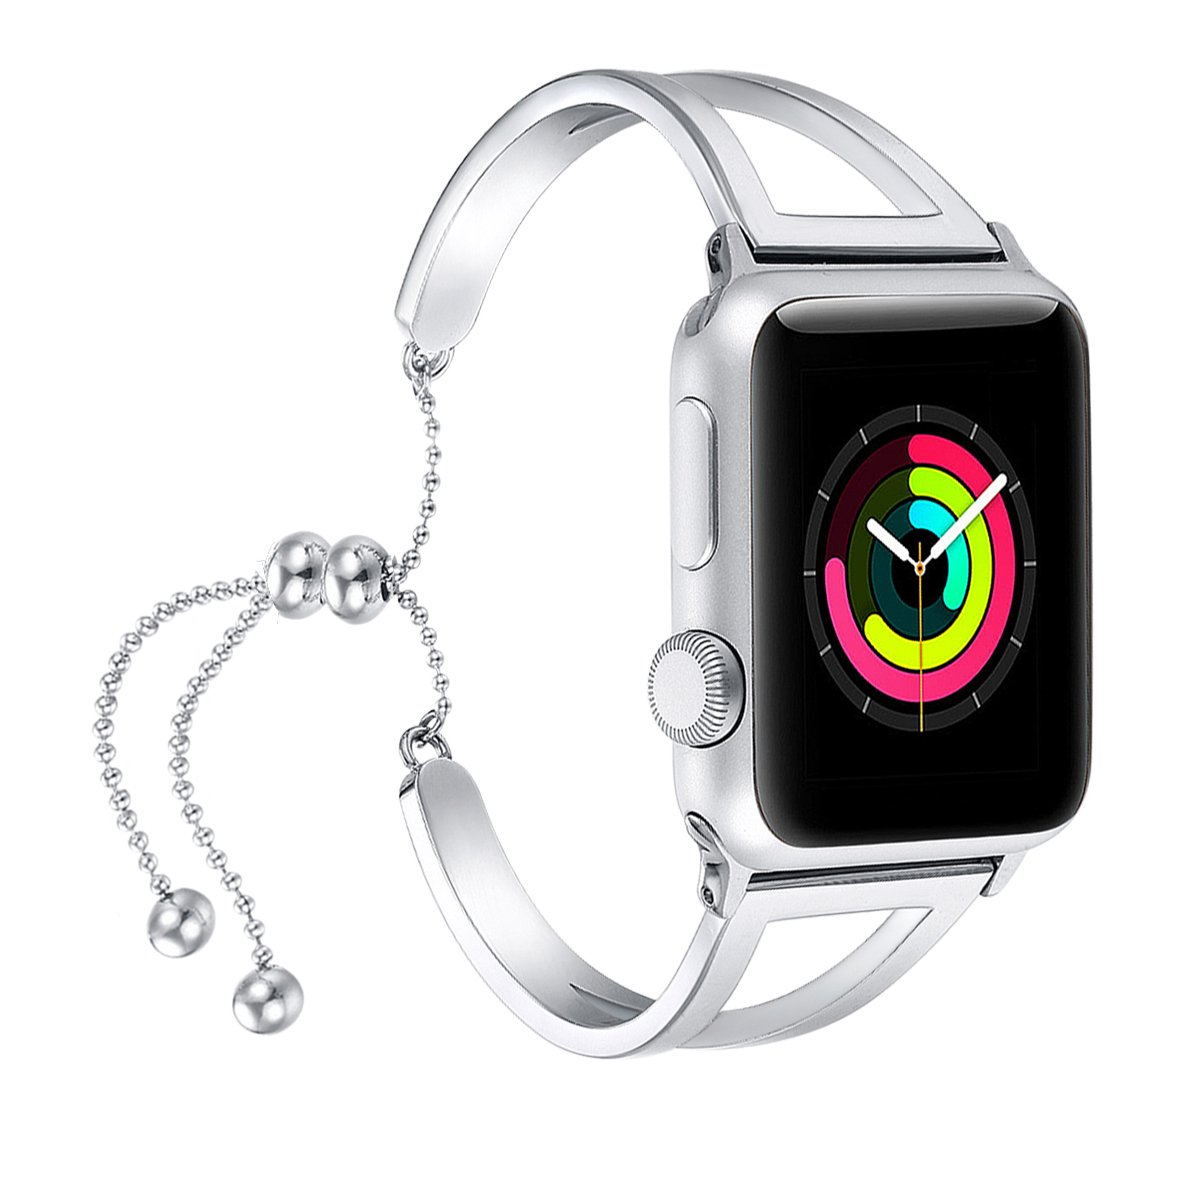 fastgo Bracelet Compatible for Apple Watch Band 38mm 42mm, 2018 Dressy Fancy Jewelry Bangle Cuff for Iwatch Bands Series 4 3 2 1 Women Girls Adjustable Stainless Steel Pendant (Silver - 38mm 40mm) by fastgo